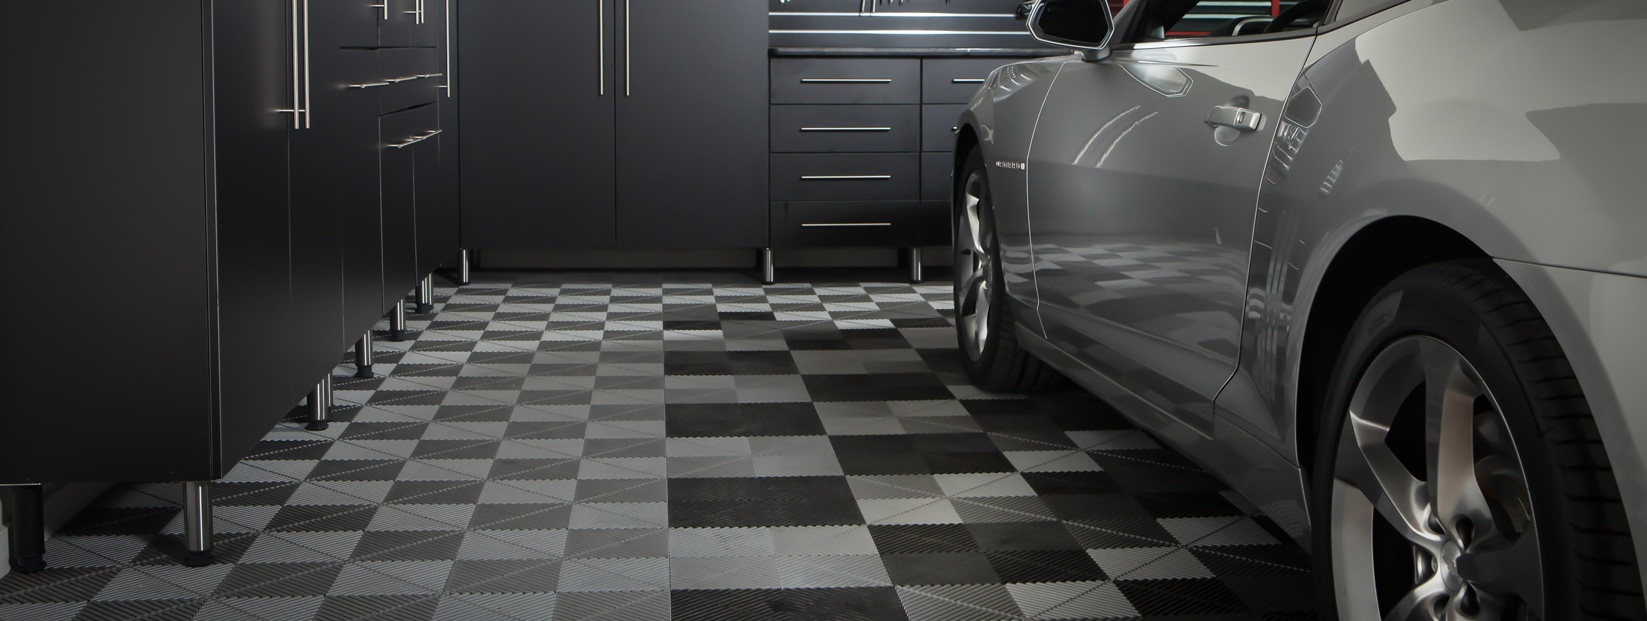 Garage Floor Tiles Palm Beach